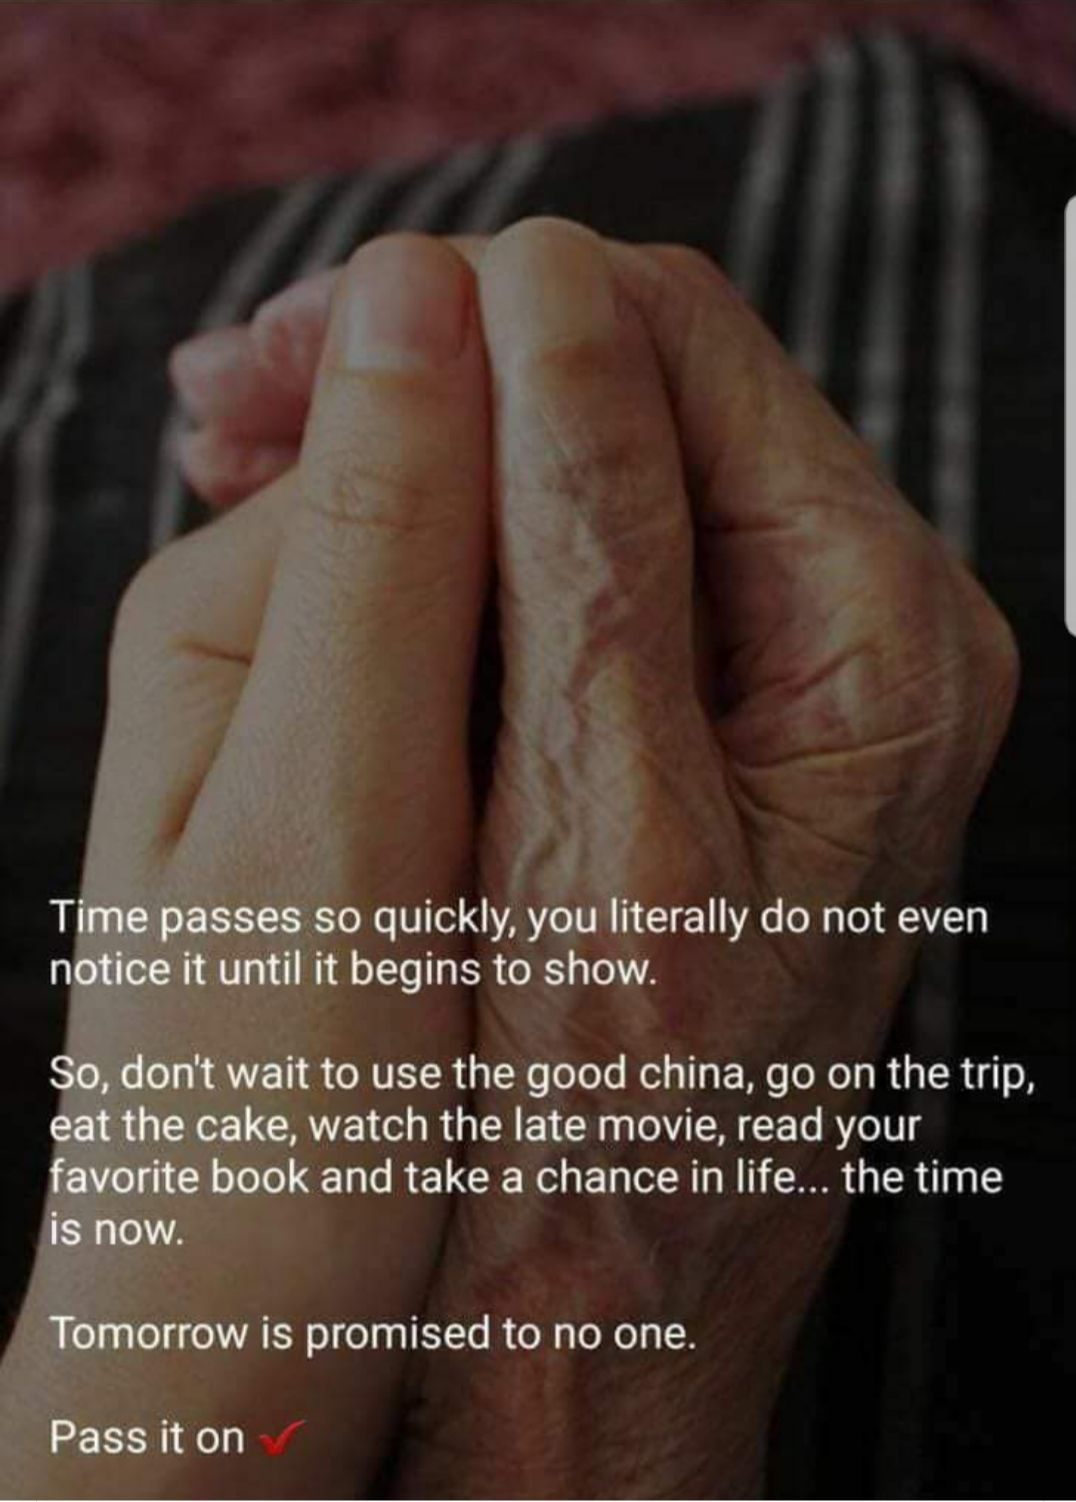 Time Passes So Fast Timaemagement Livefornow Best Bestme Advicethatchangedlife Adviceforwomen Love Families Best Quotes Quotes To Live By New Quotes